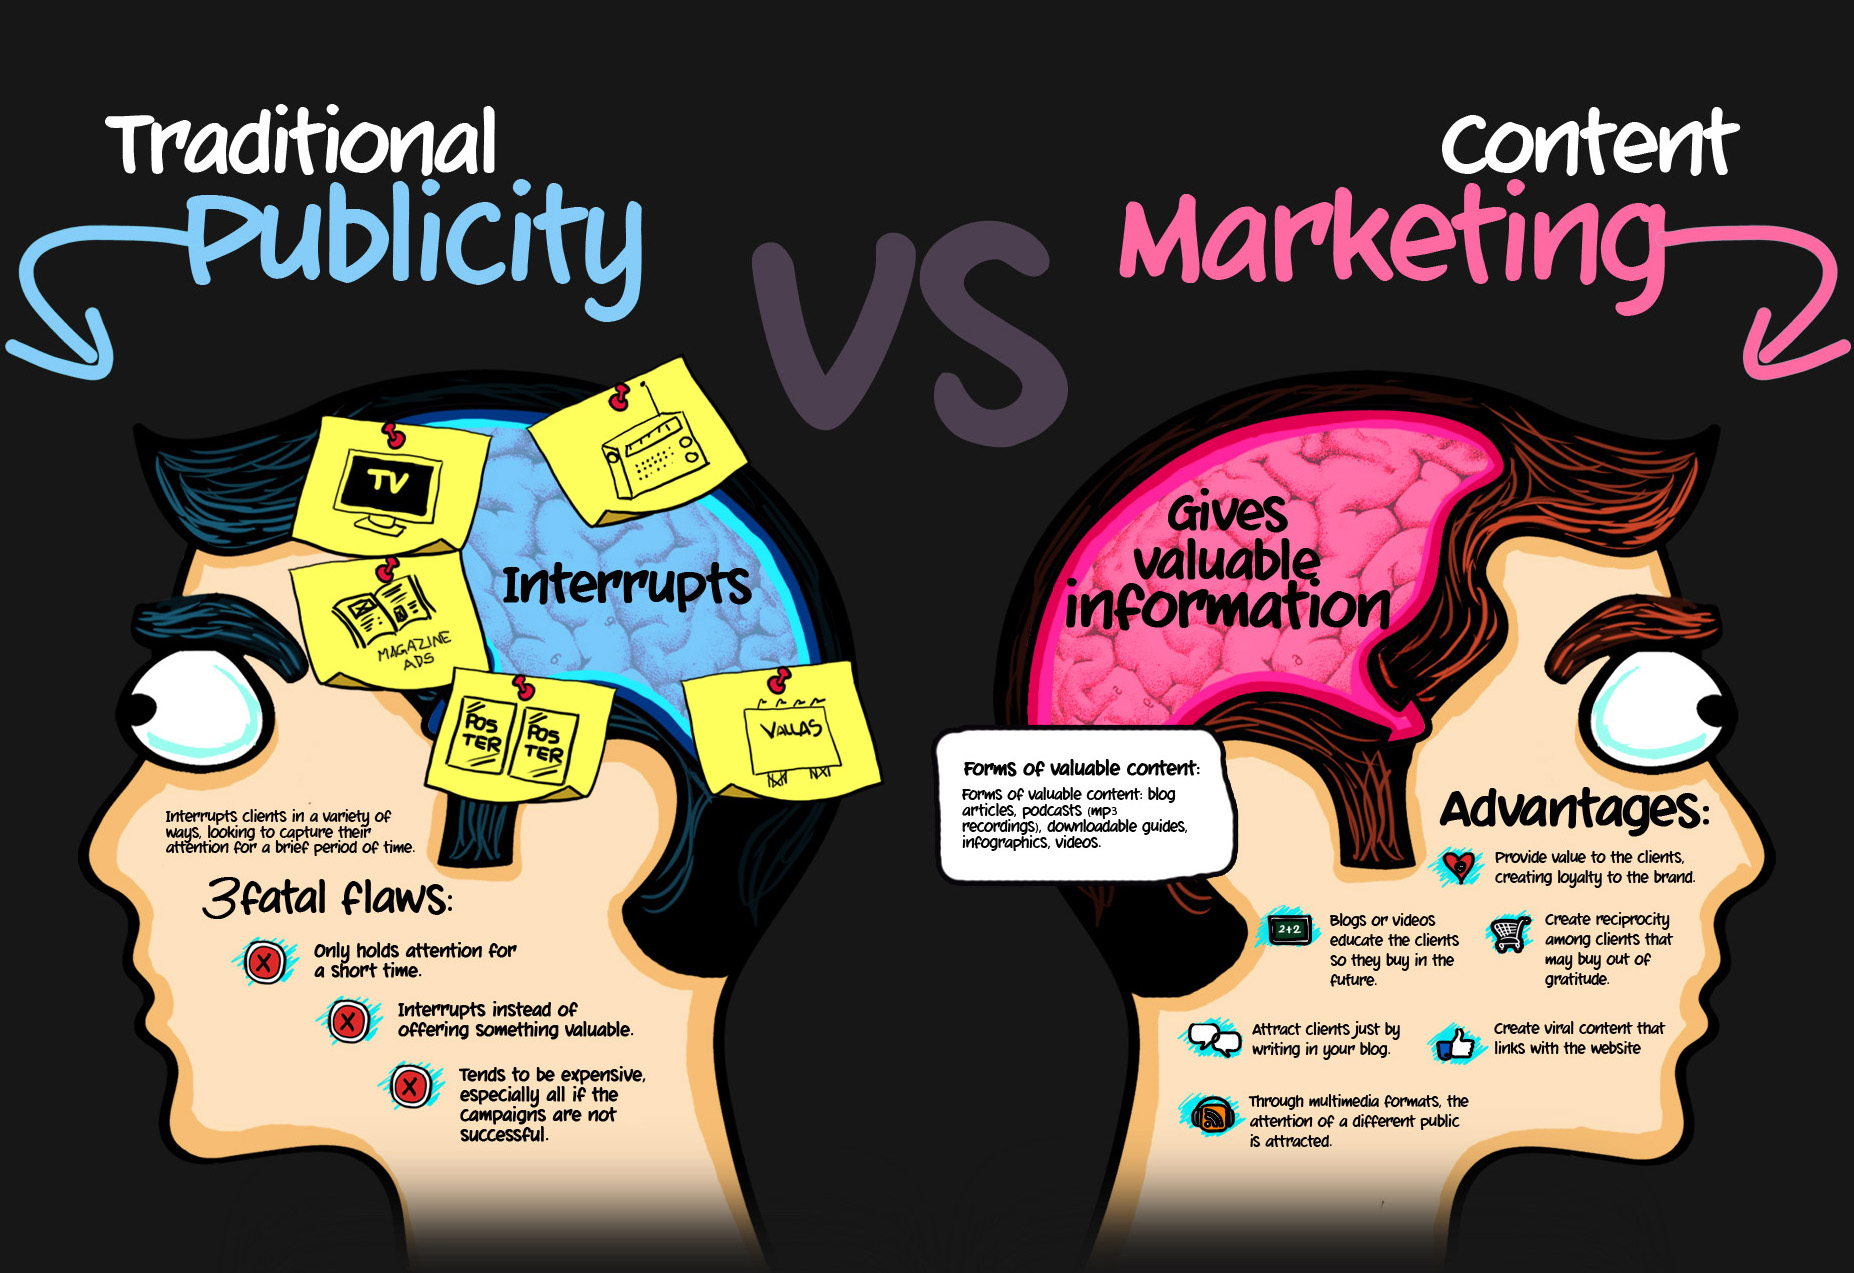 Content-Marketing 2014 trends